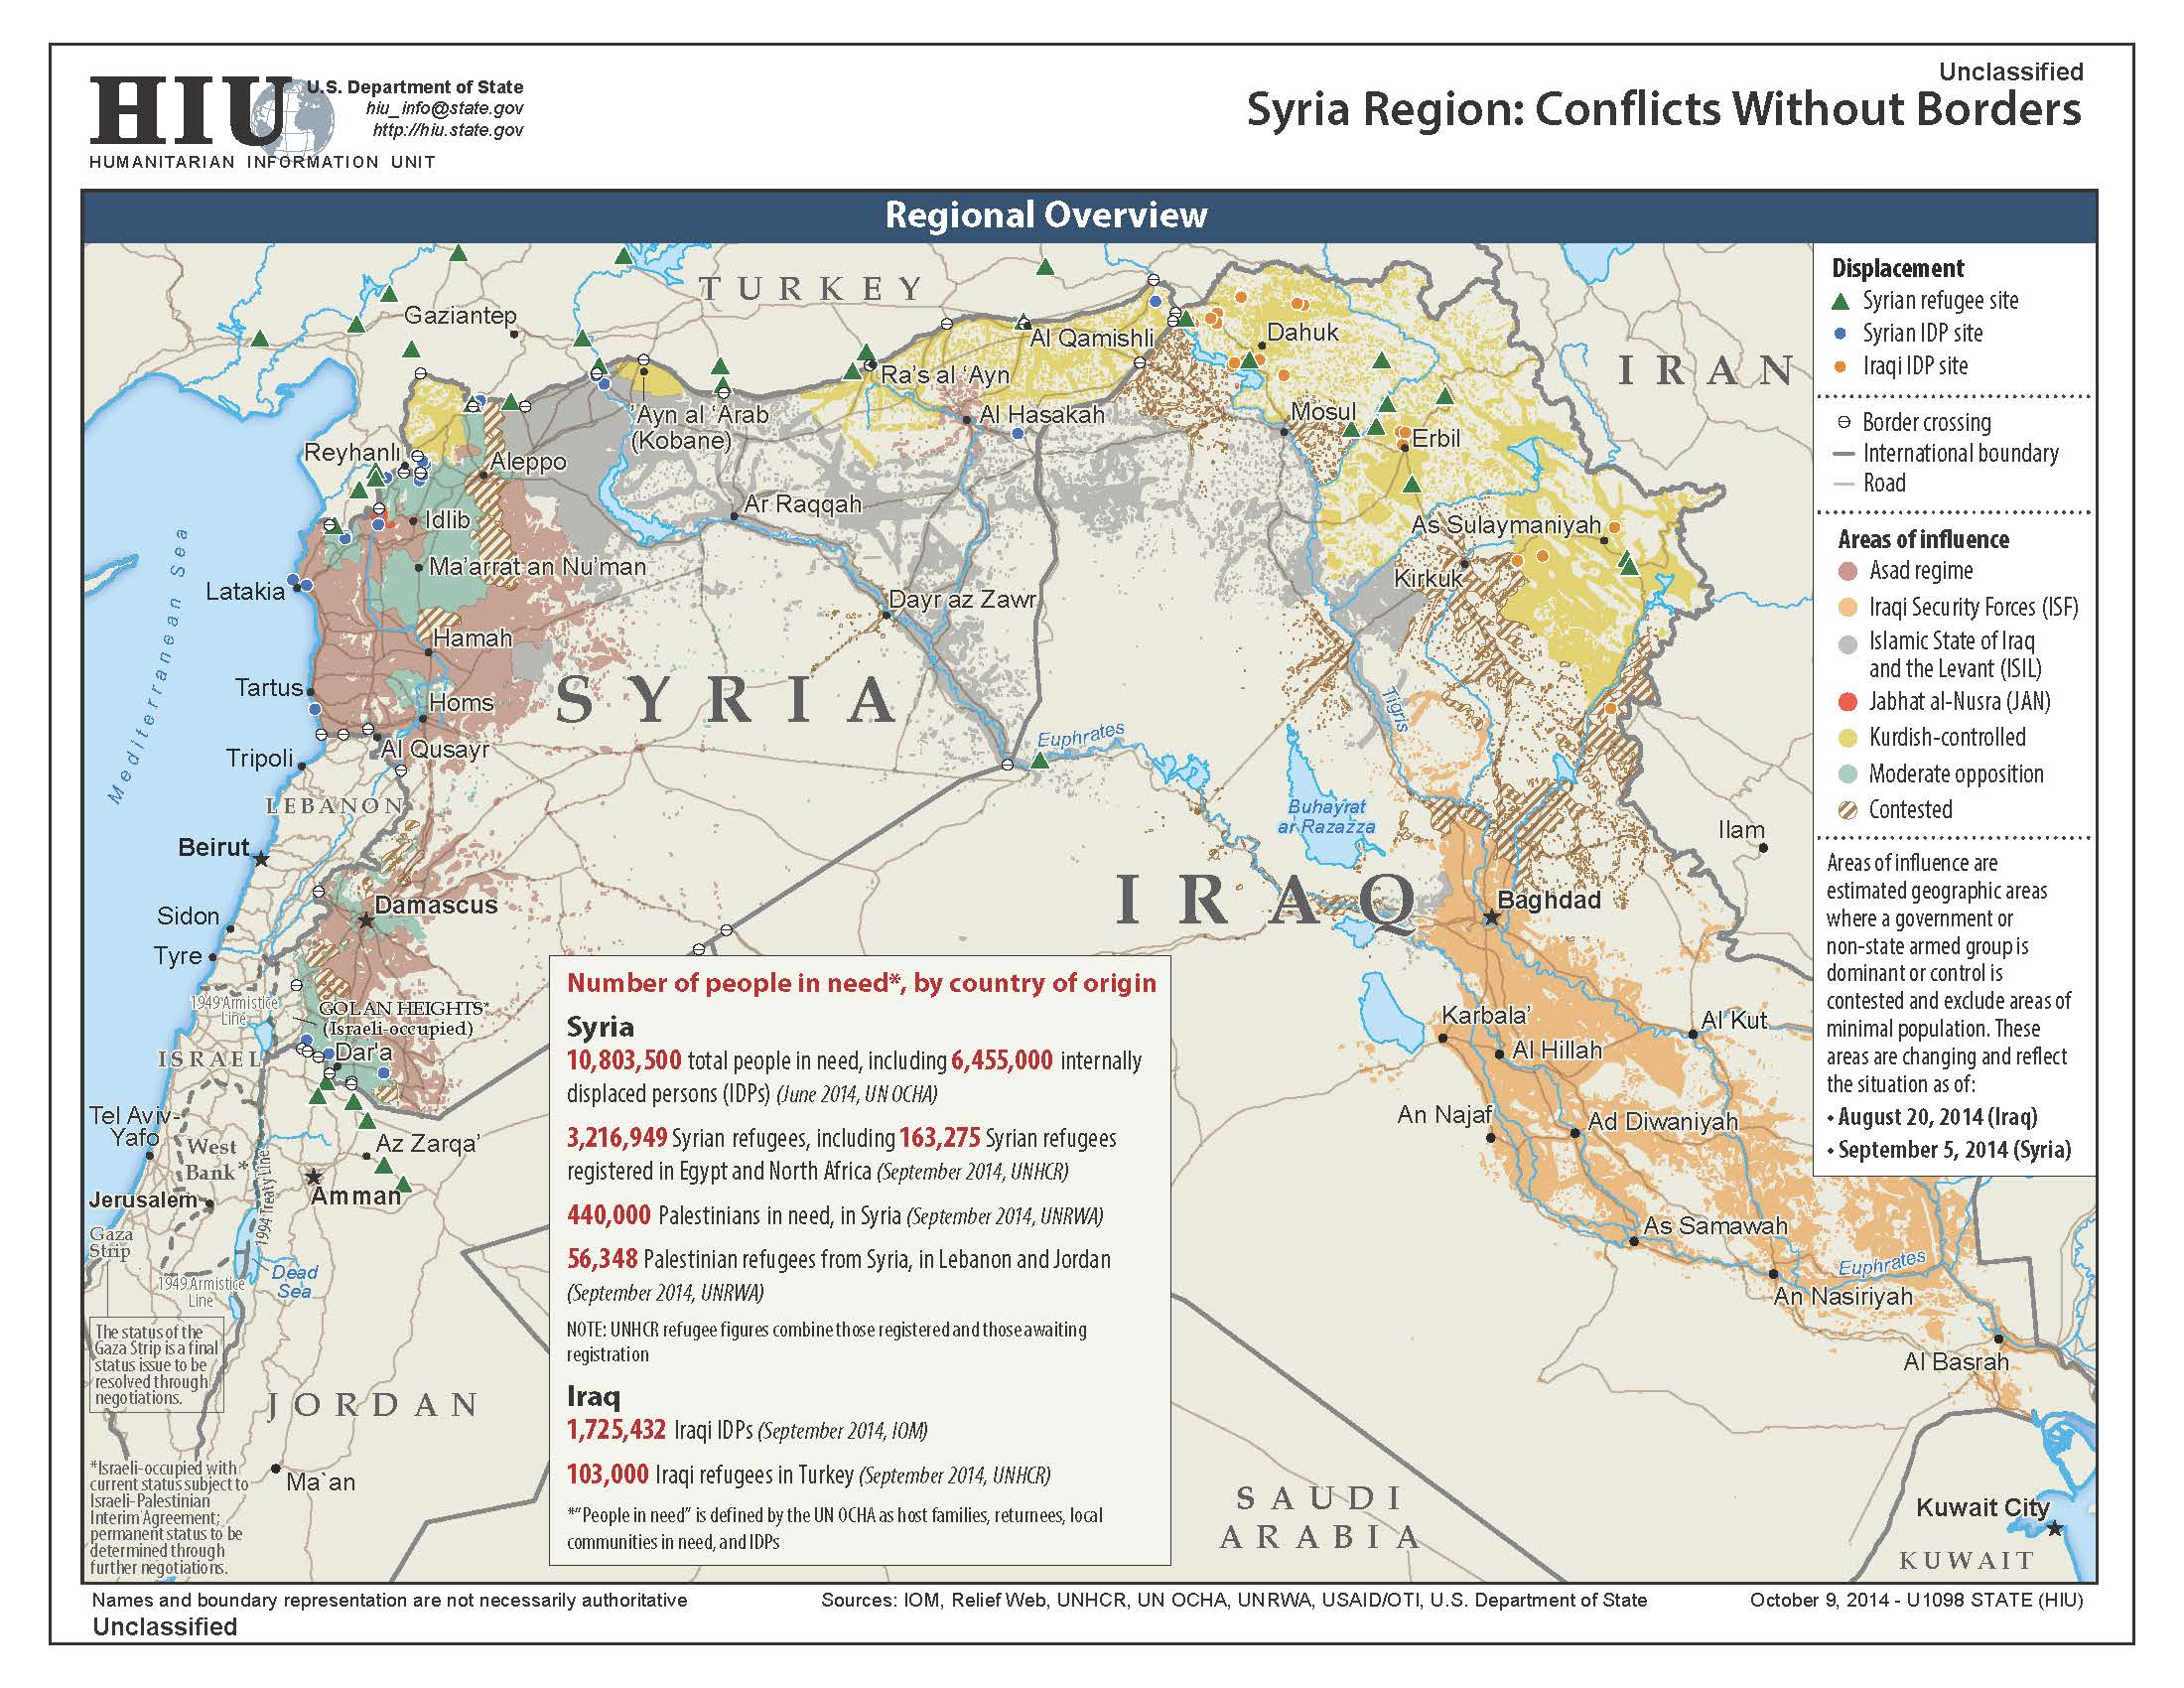 U.S. State Department Iraq-Syria Conflict Without Borders ...